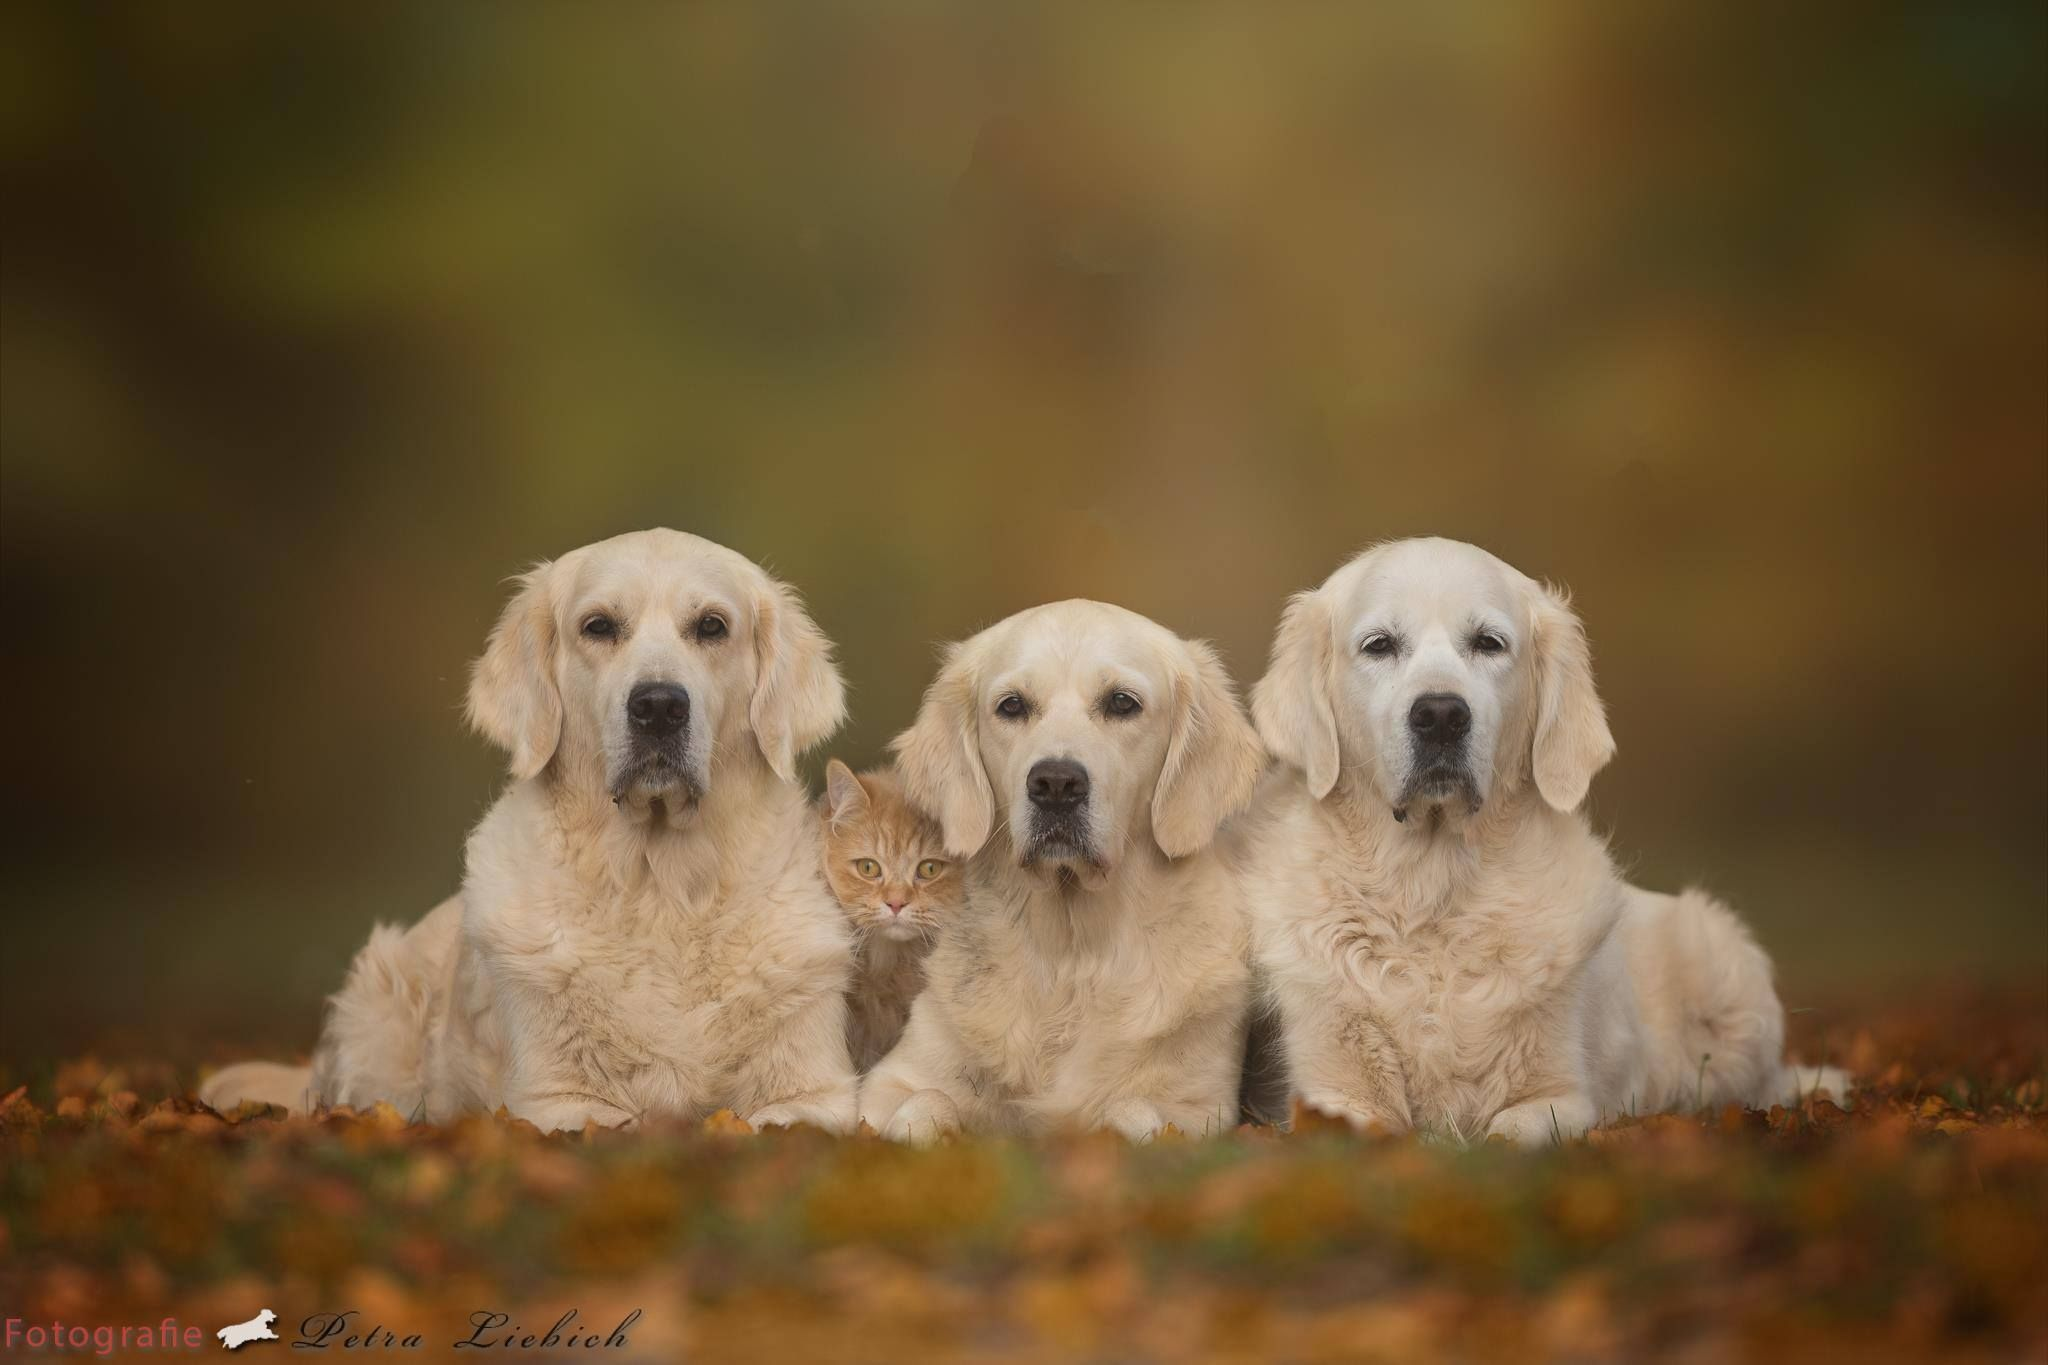 Pin By Marian Maulis On Dogs Dogs Golden Retriever Dog Lovers